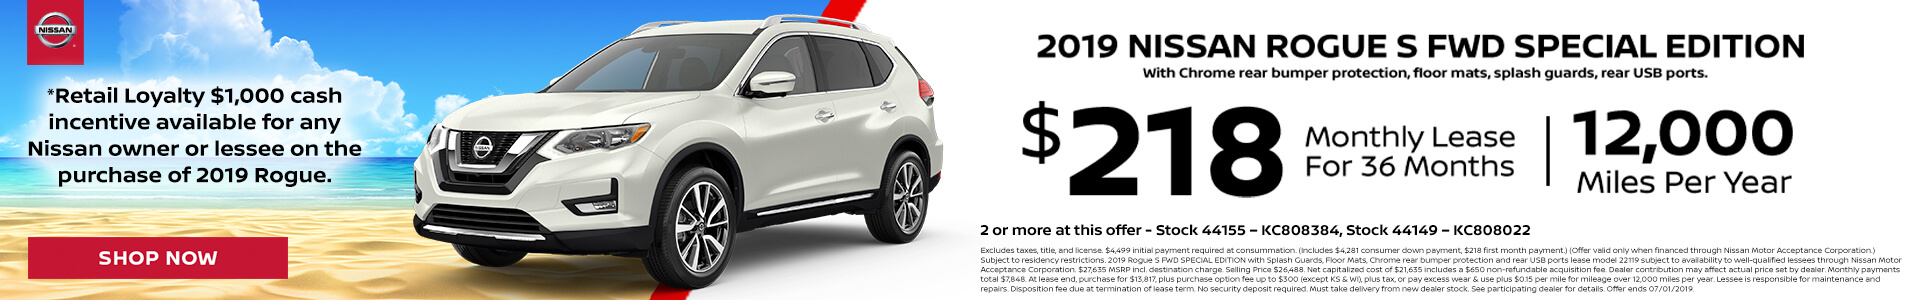 Nissan Rogue $218 Lease